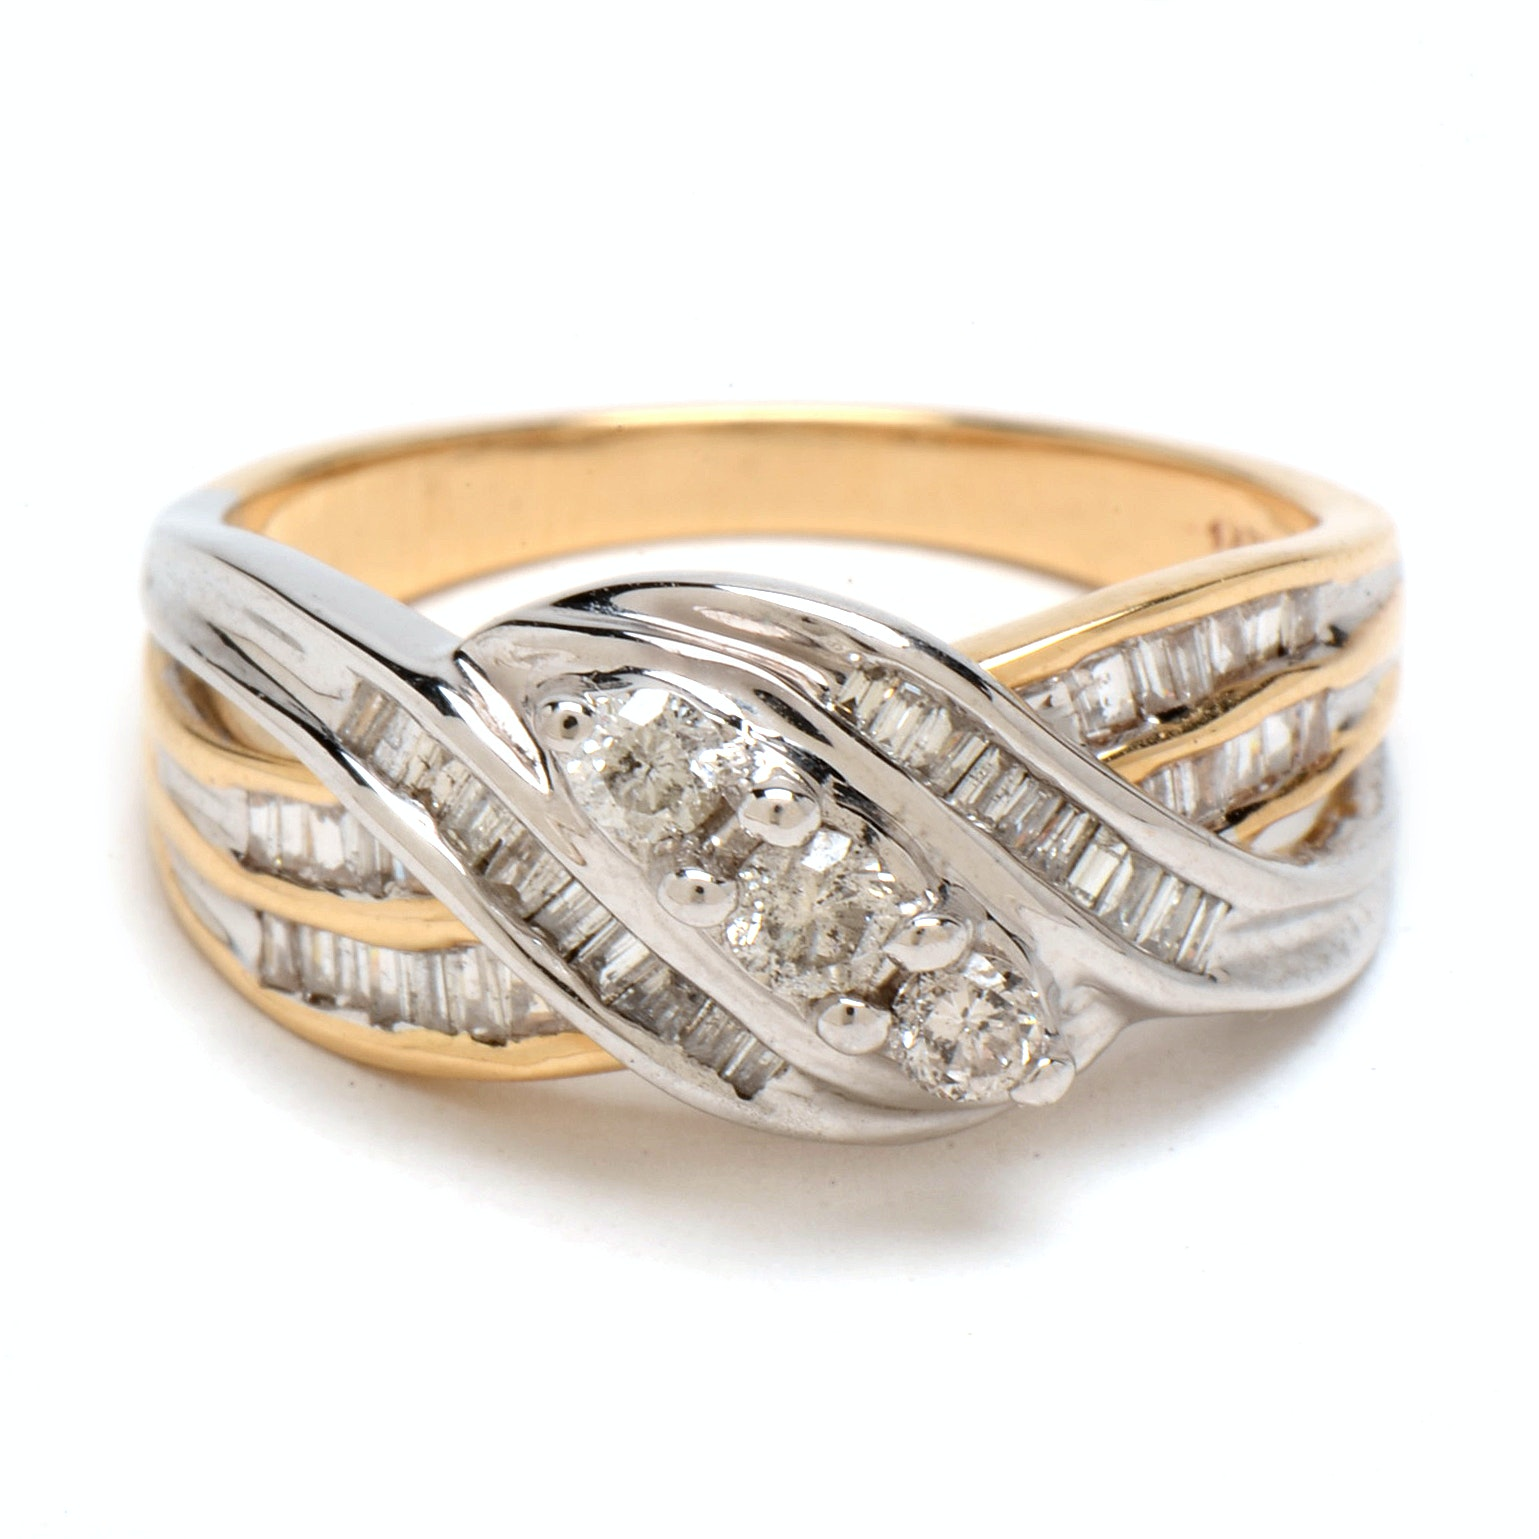 14K Yellow and White Gold Diamond Knot Ring